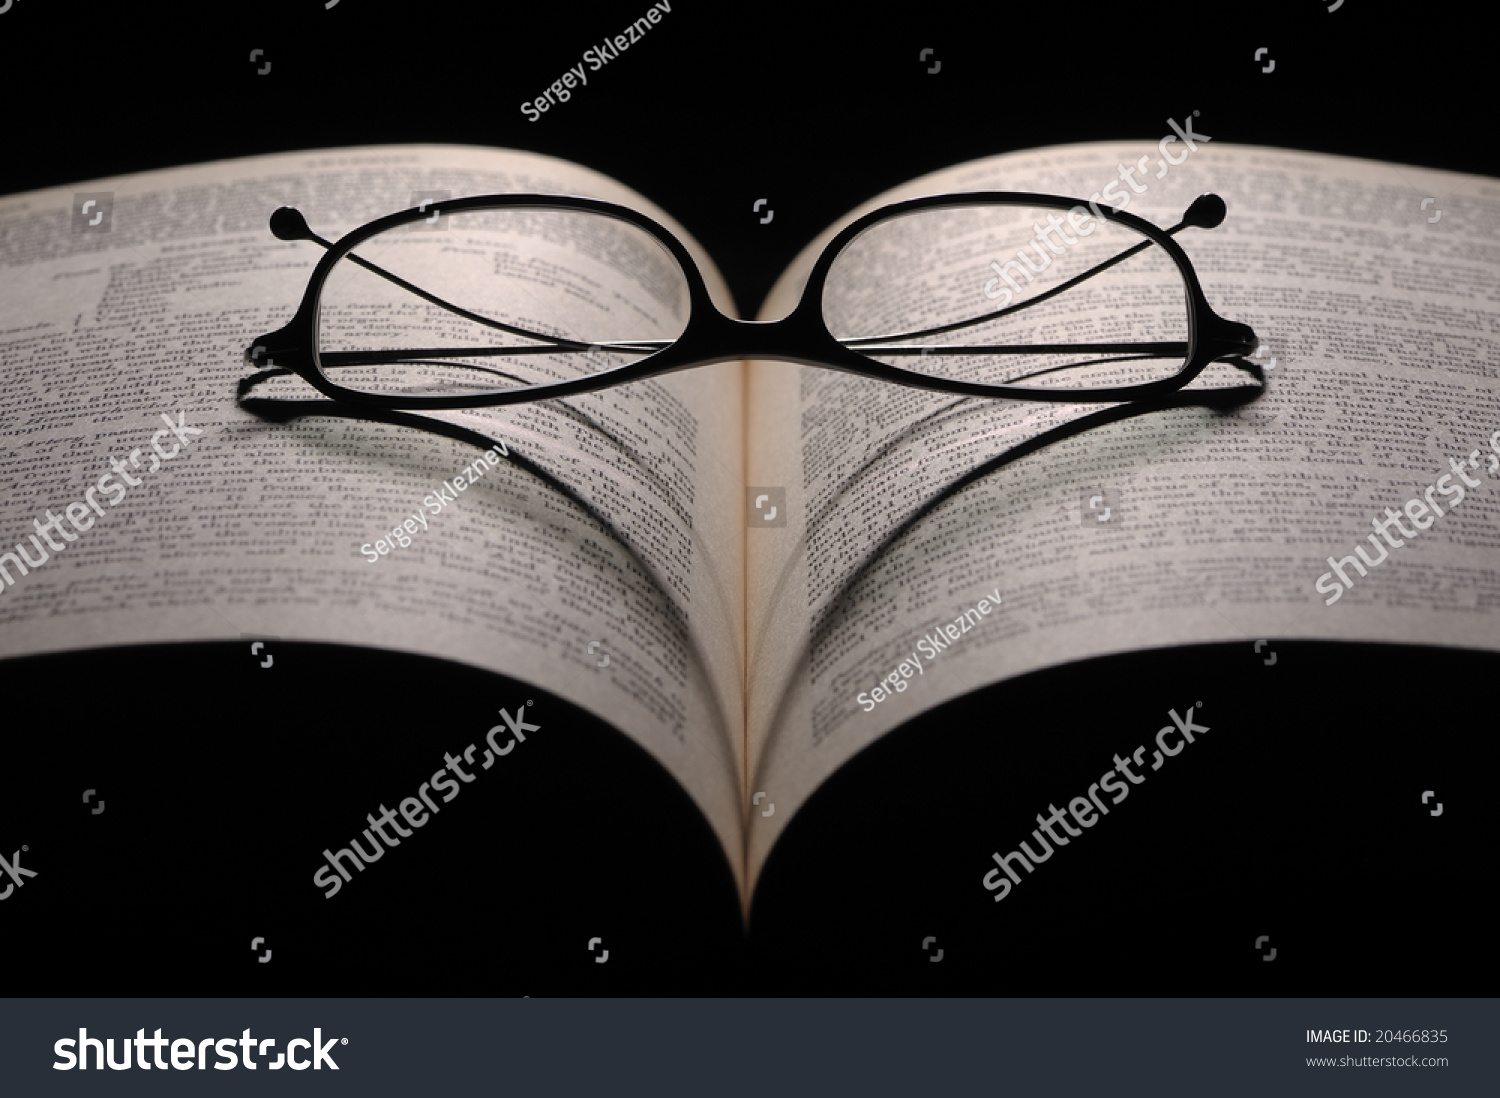 Reading Glasses On Anatomy Guide Stock Photo (Safe to Use) 20466835 ...